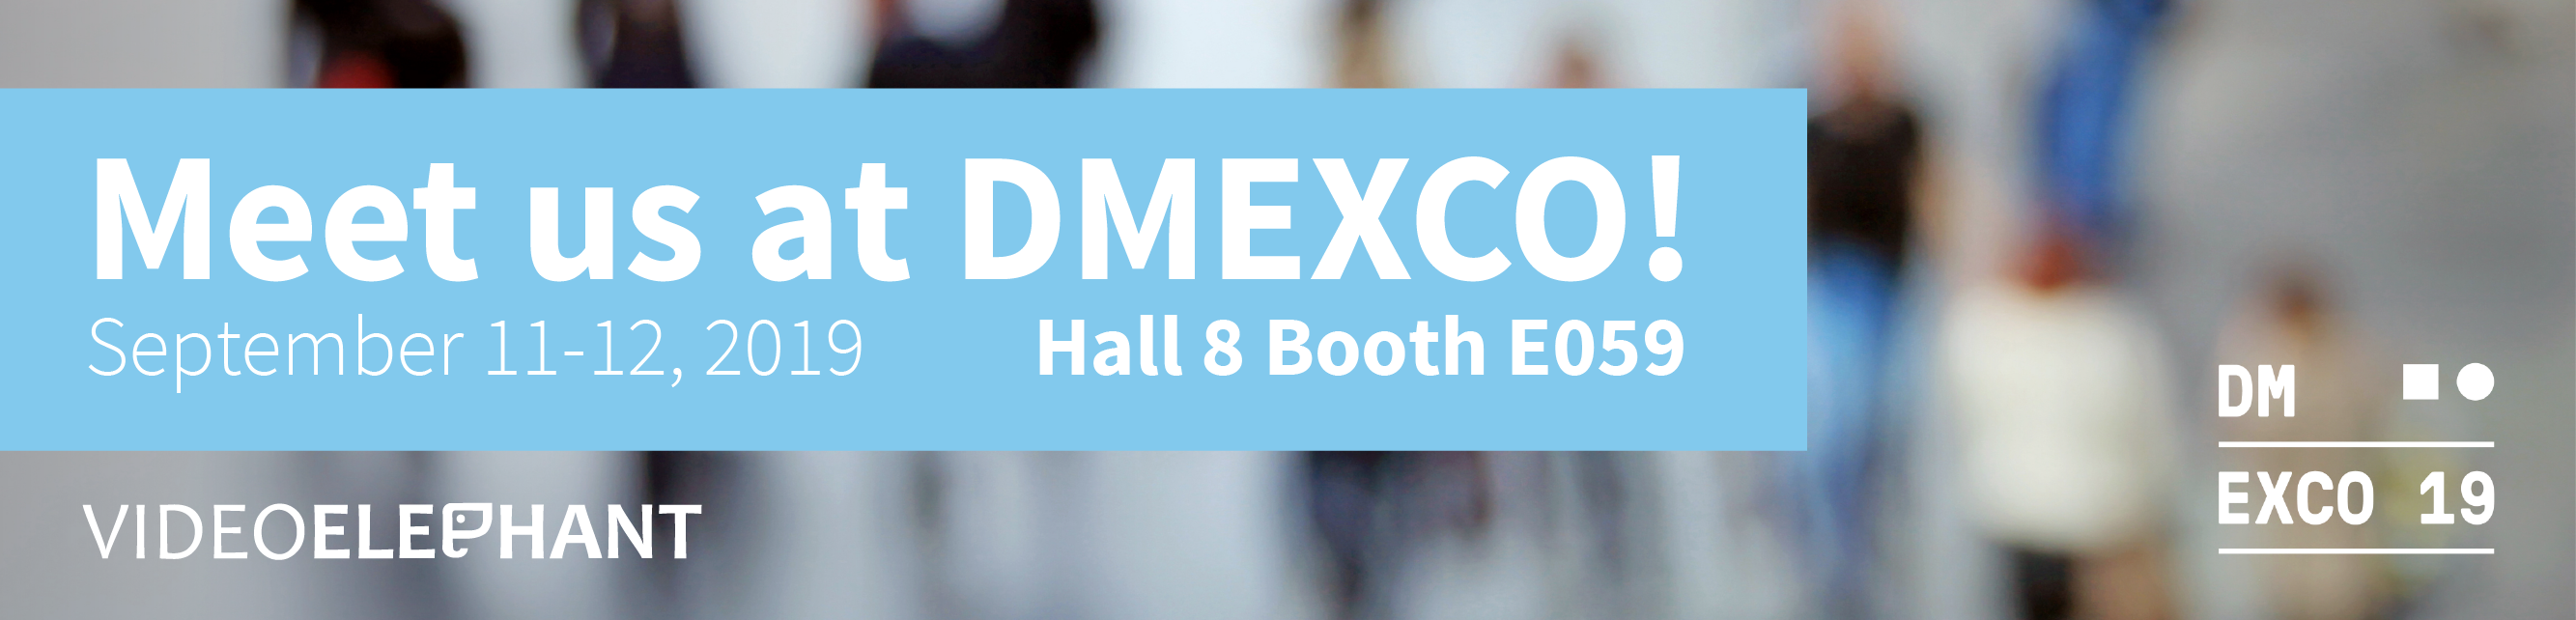 dmexco_2019_banner-2